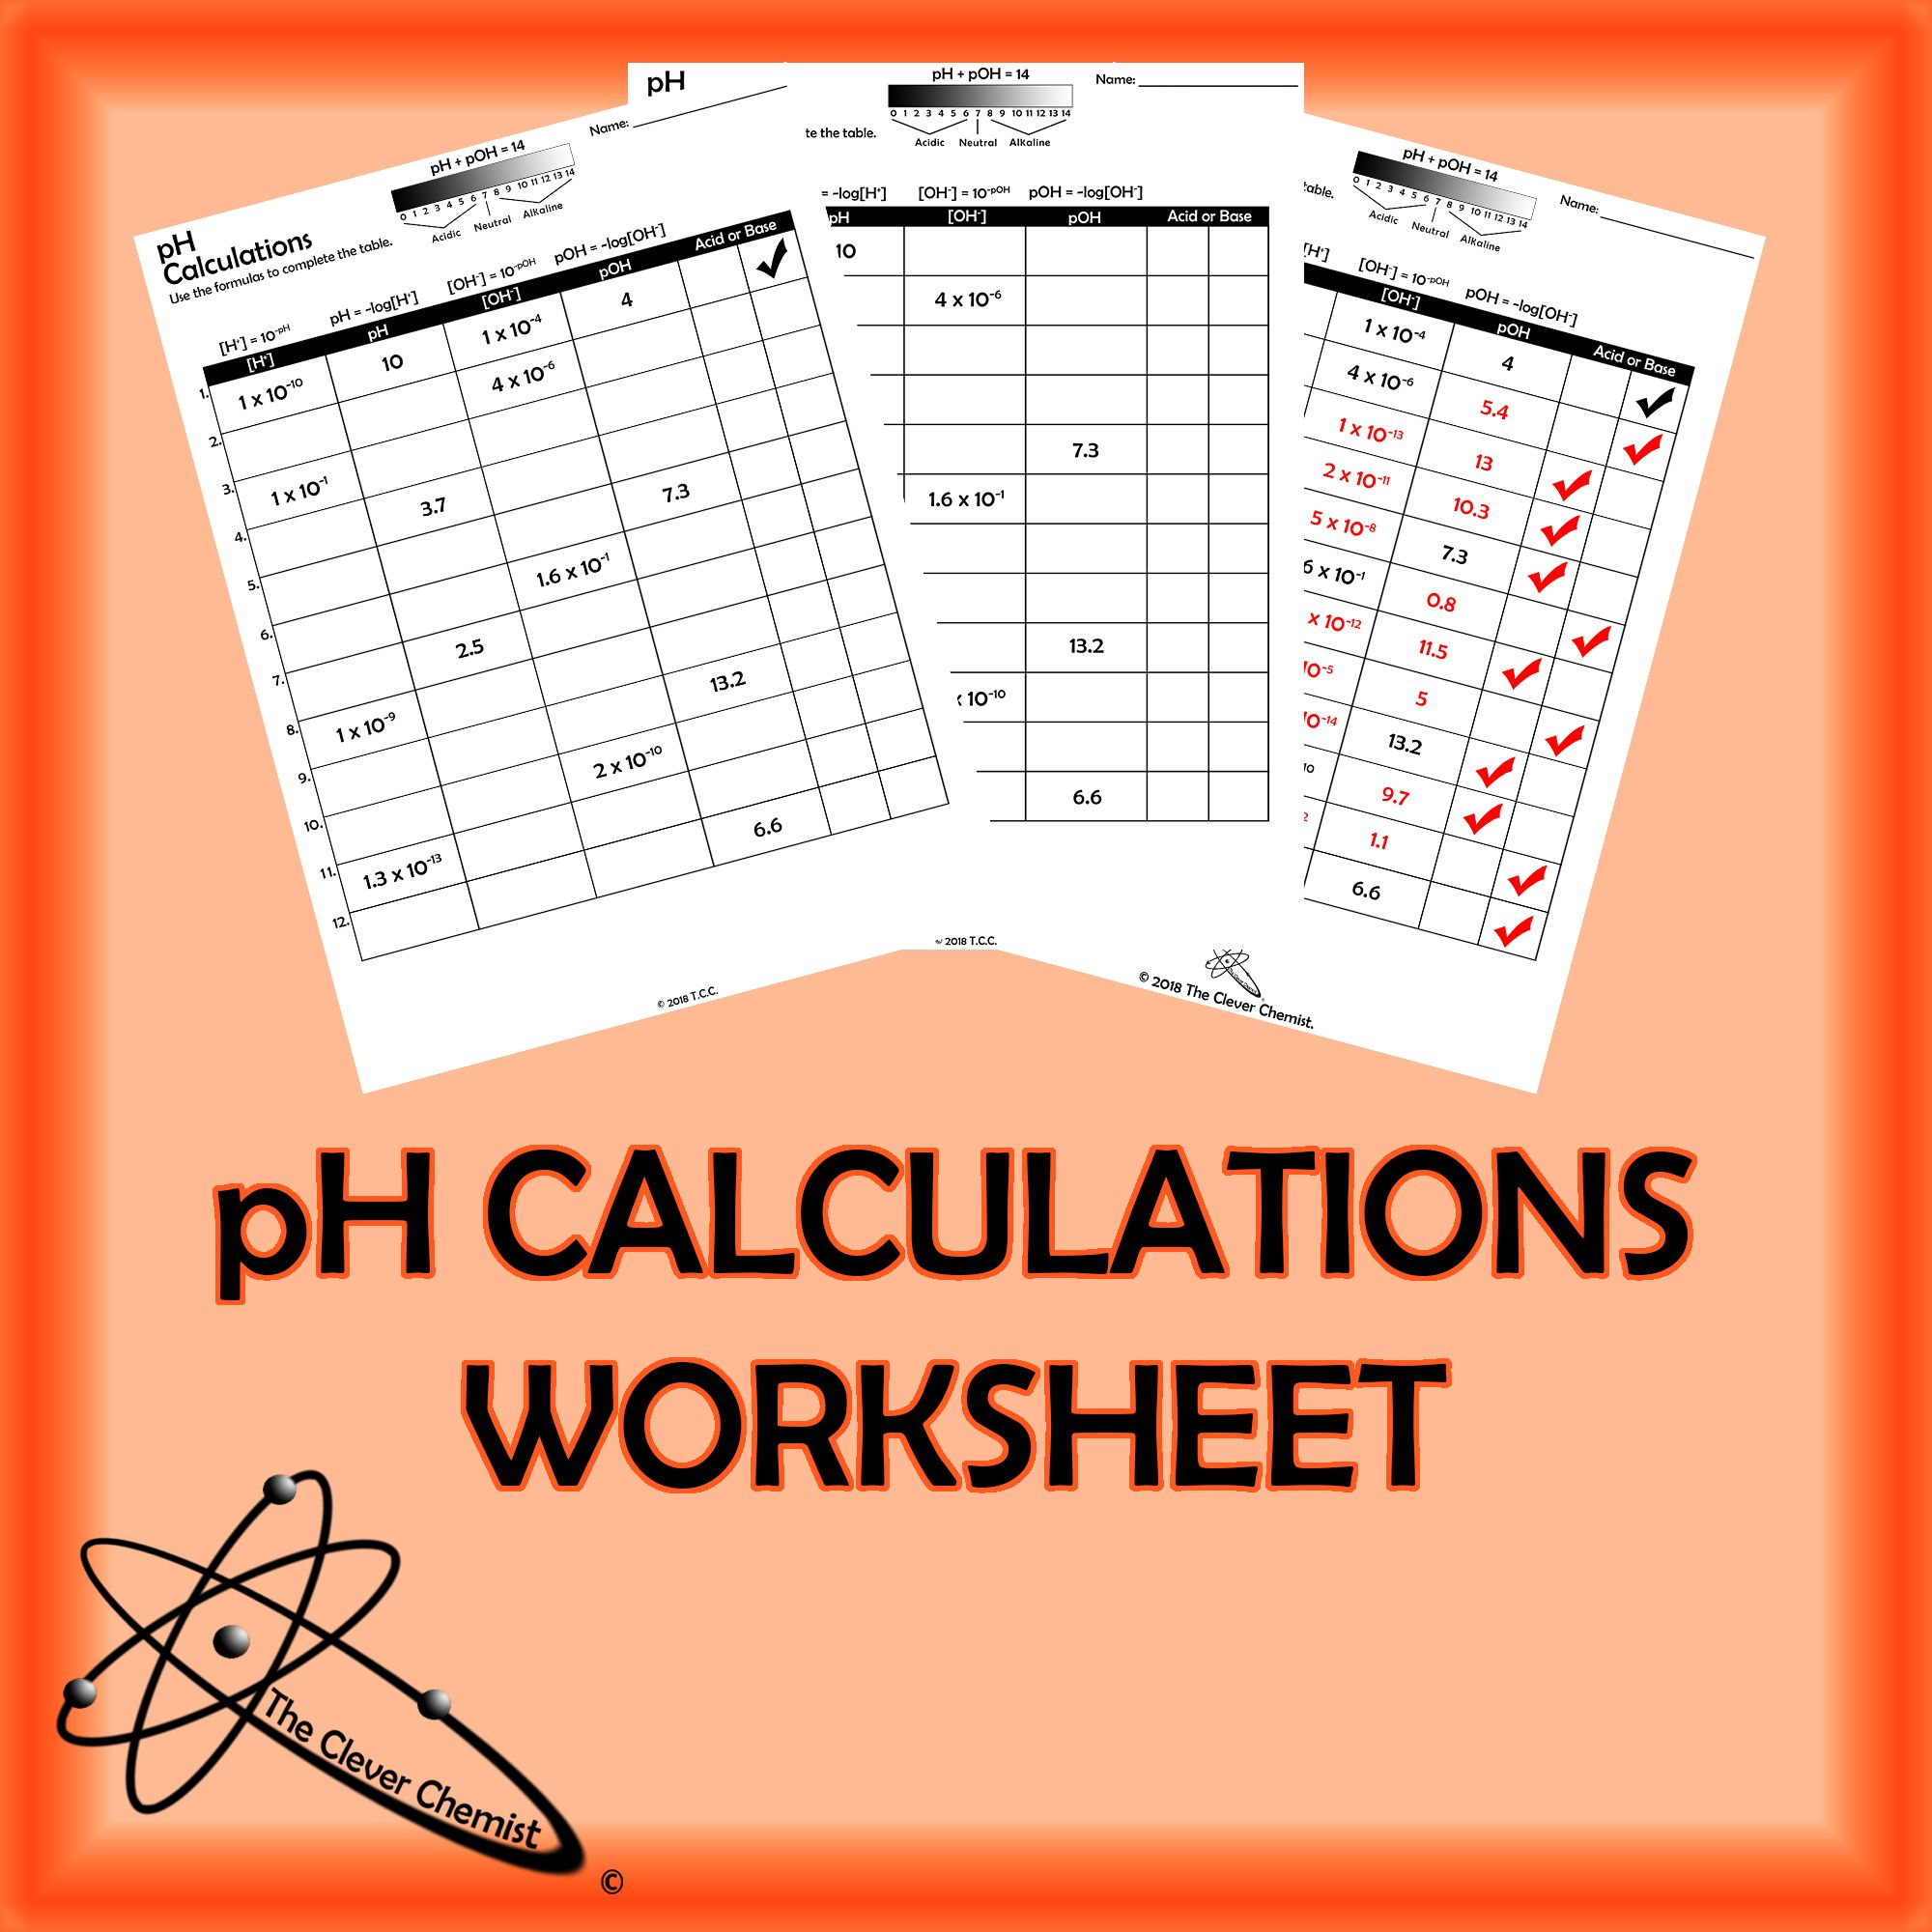 Ph Calculations Worksheet